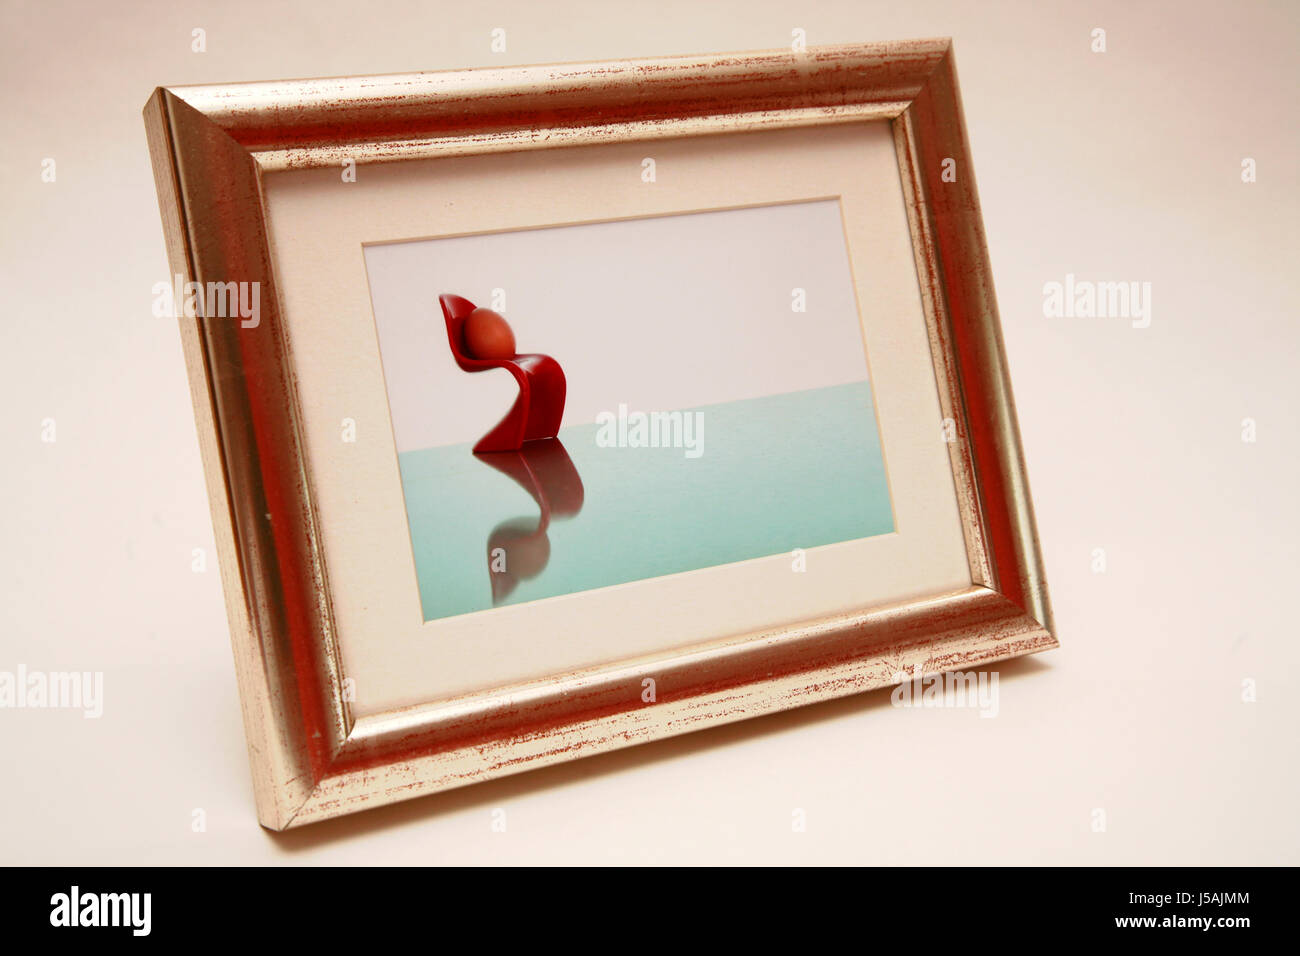 Silver Photo Frame Picture Stockfotos & Silver Photo Frame Picture ...